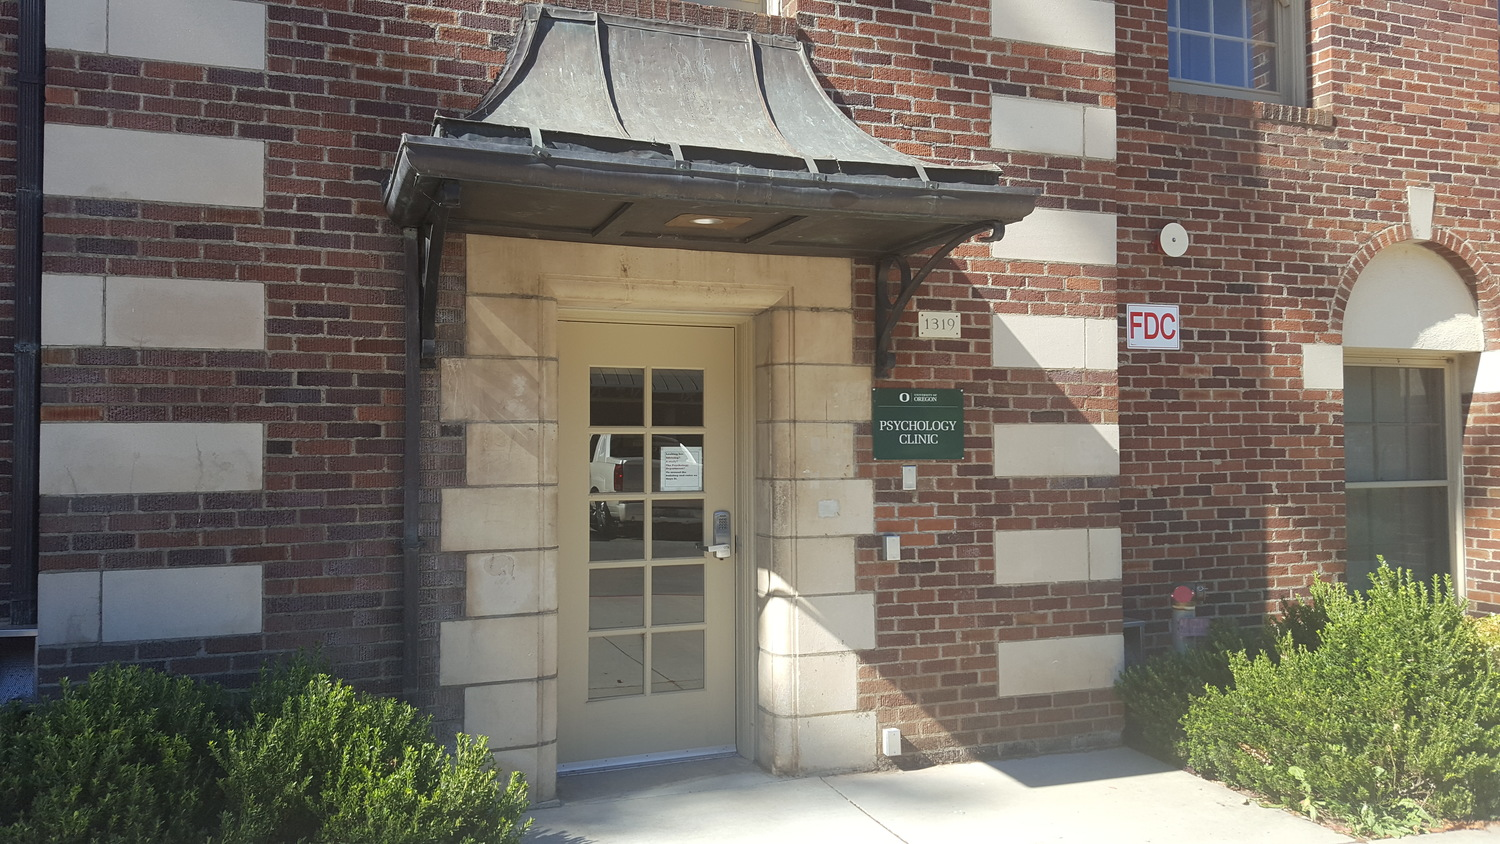 Psychology clinic entrance